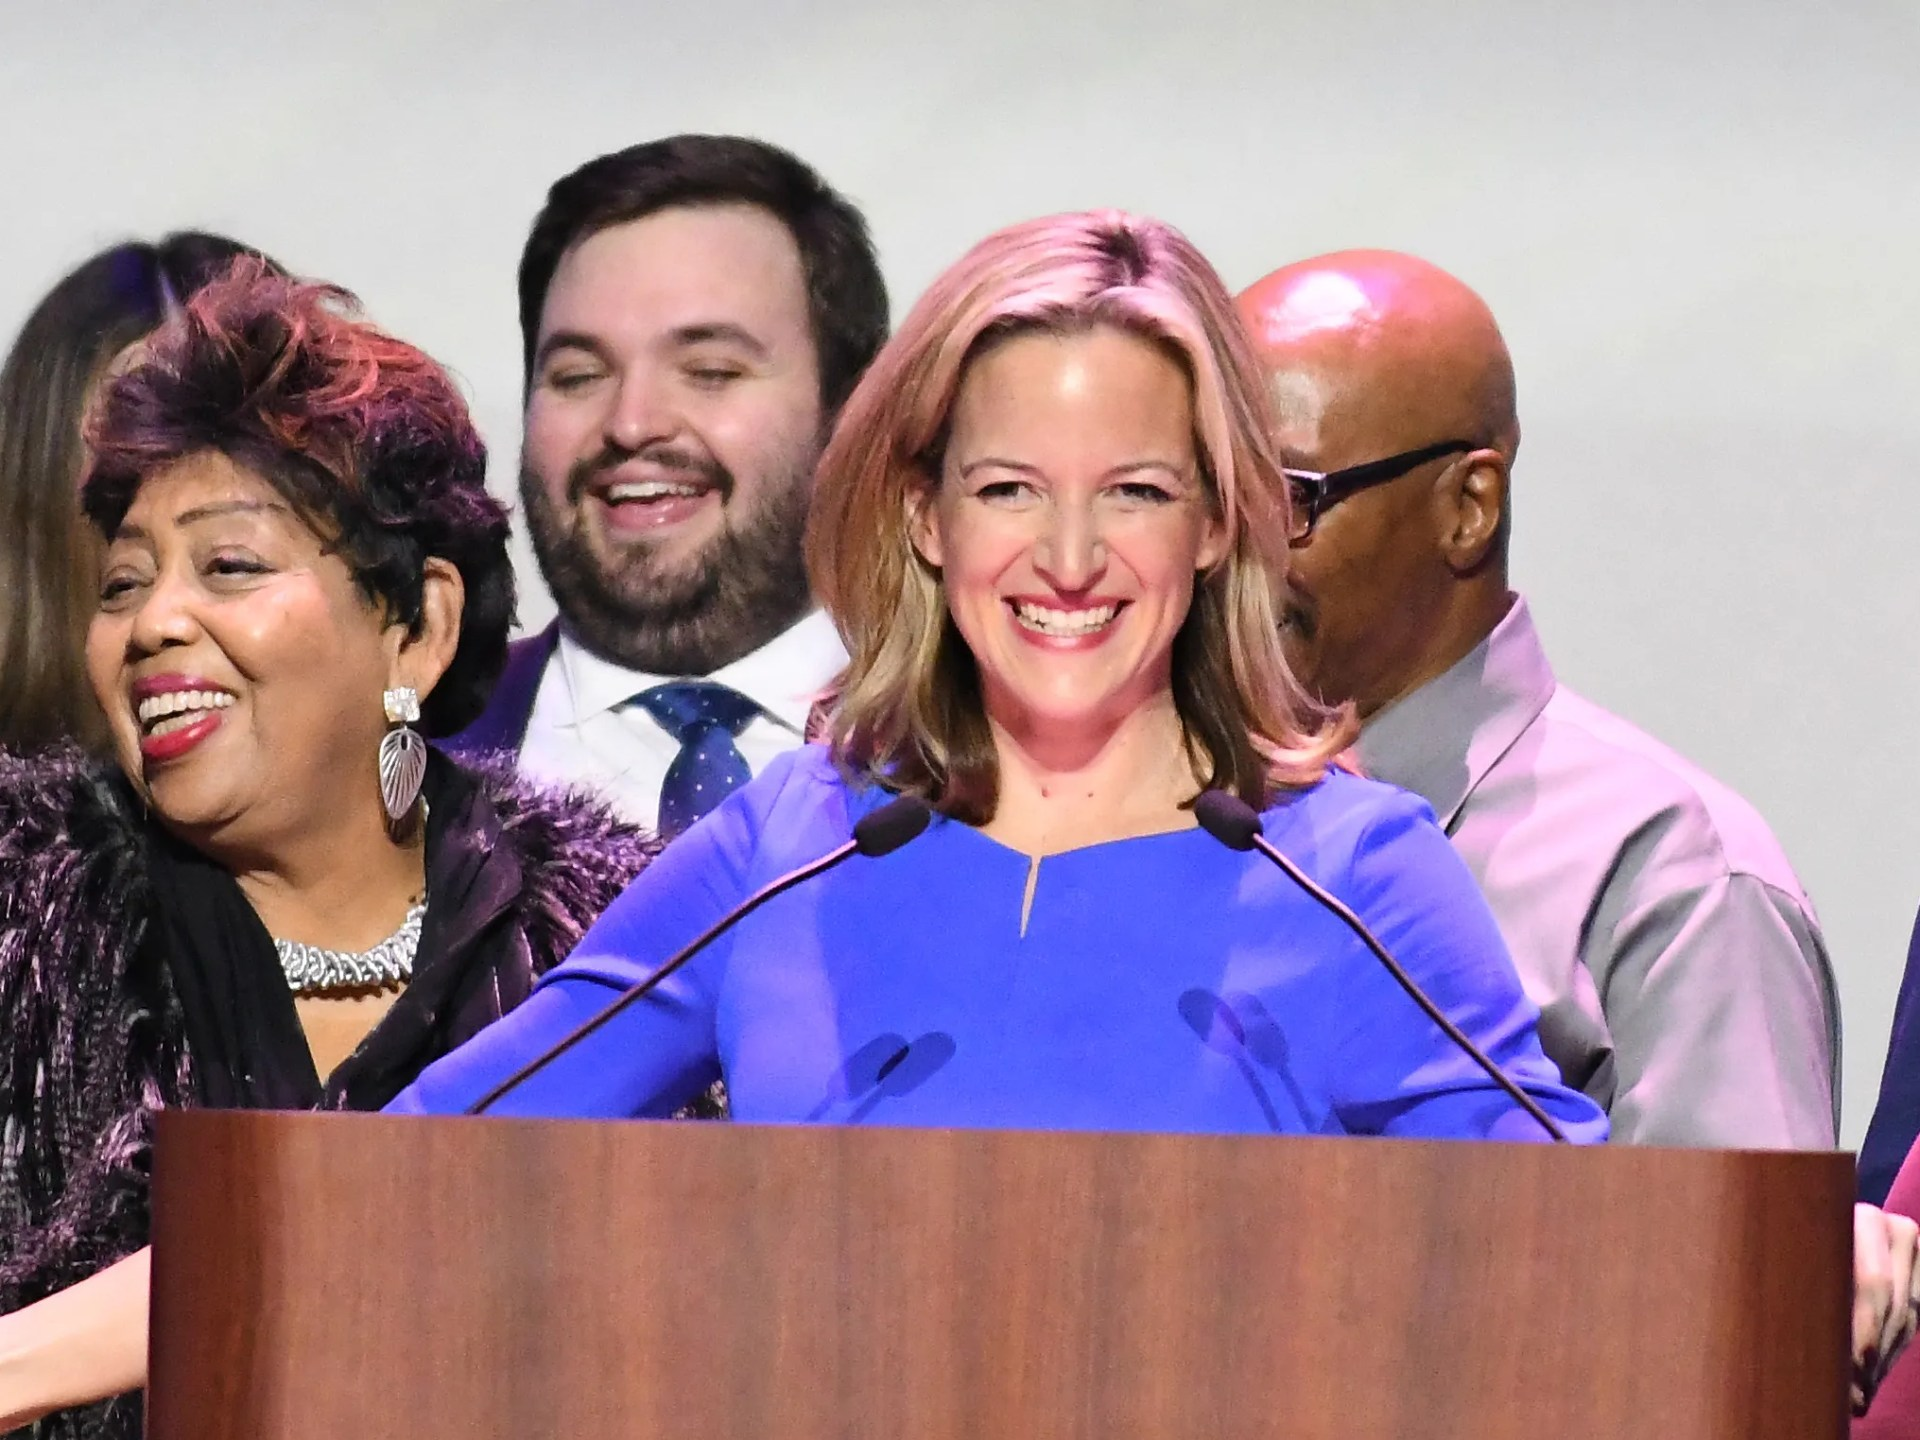 Secretary of State-elect Jocelyn Benson thanks her supporters during the Democratic Party election night party at the Sound Board theater at Motor City Casino in Detroit on Tuesday night.